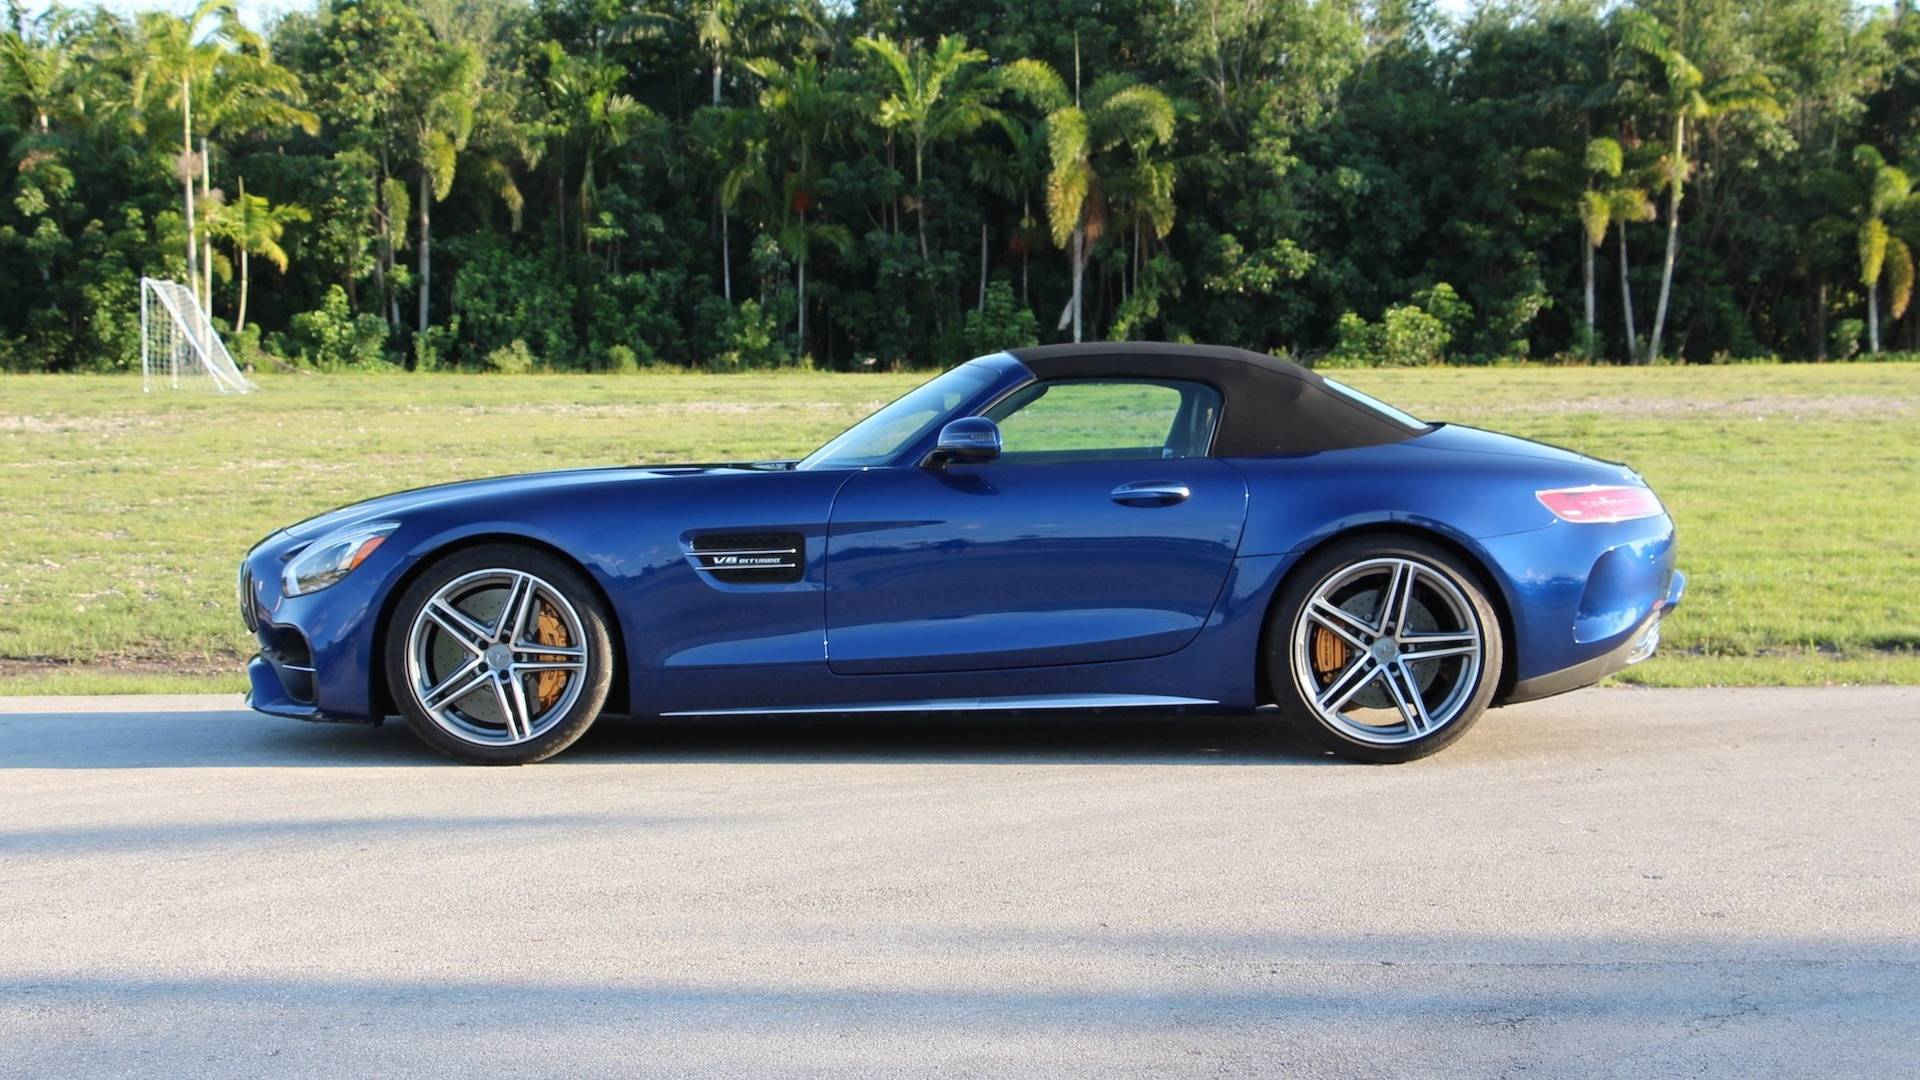 2018 Mercedes-AMG GT C Roadster Review: Performance Over Pleasure